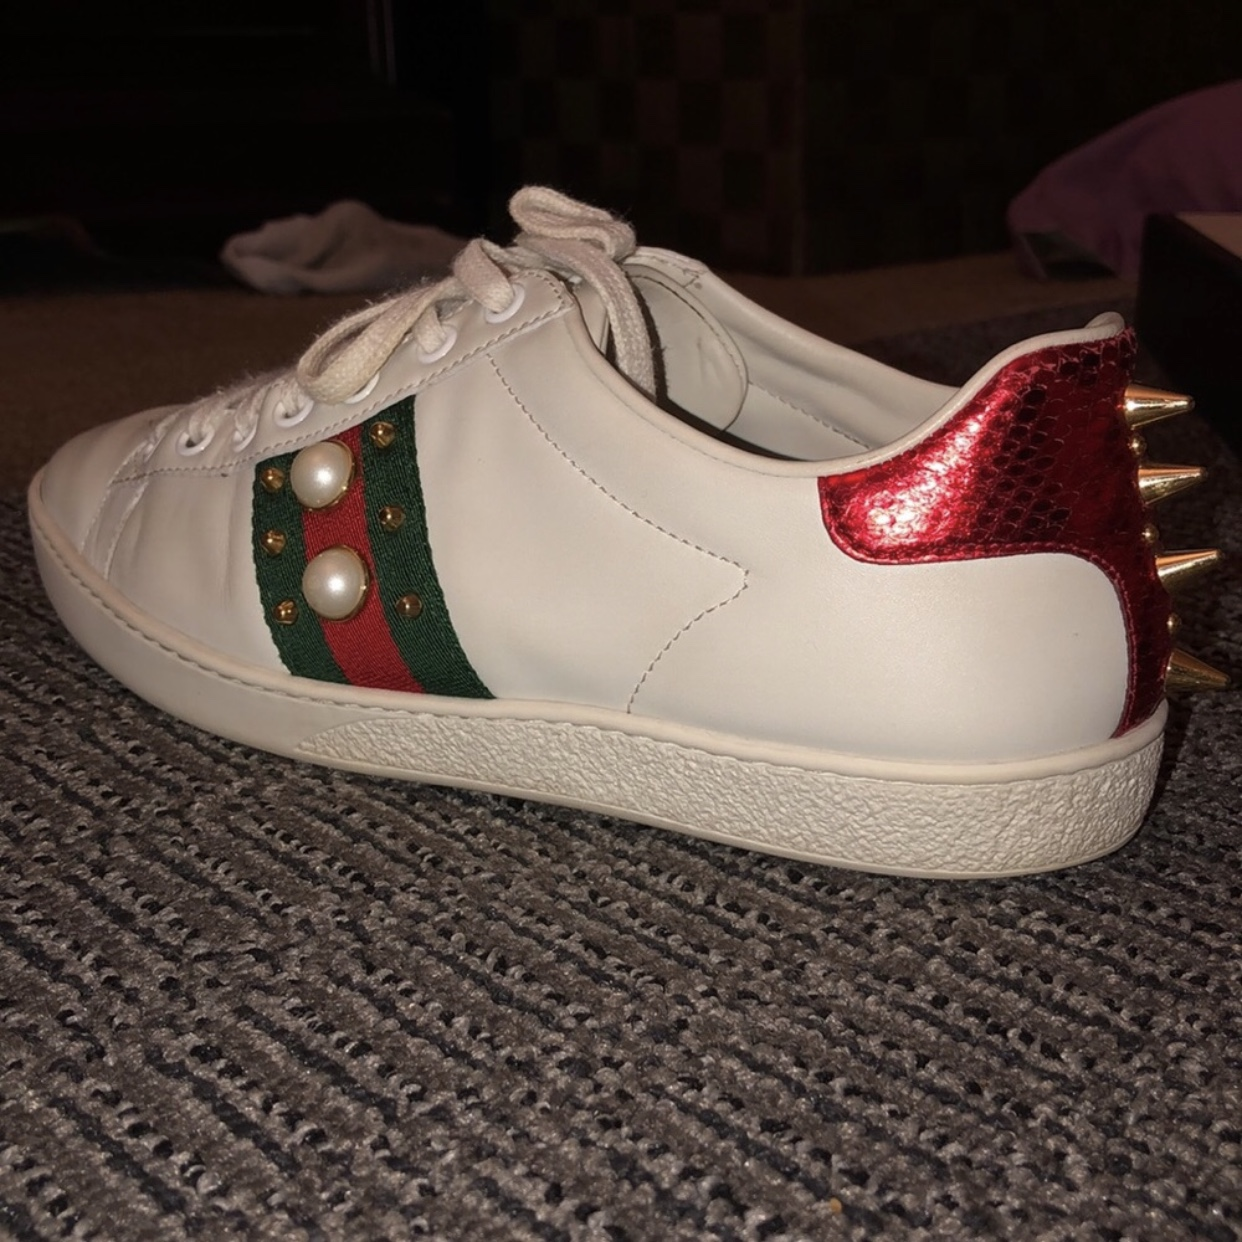 Gucci Ace Sneakers. Used and creased on